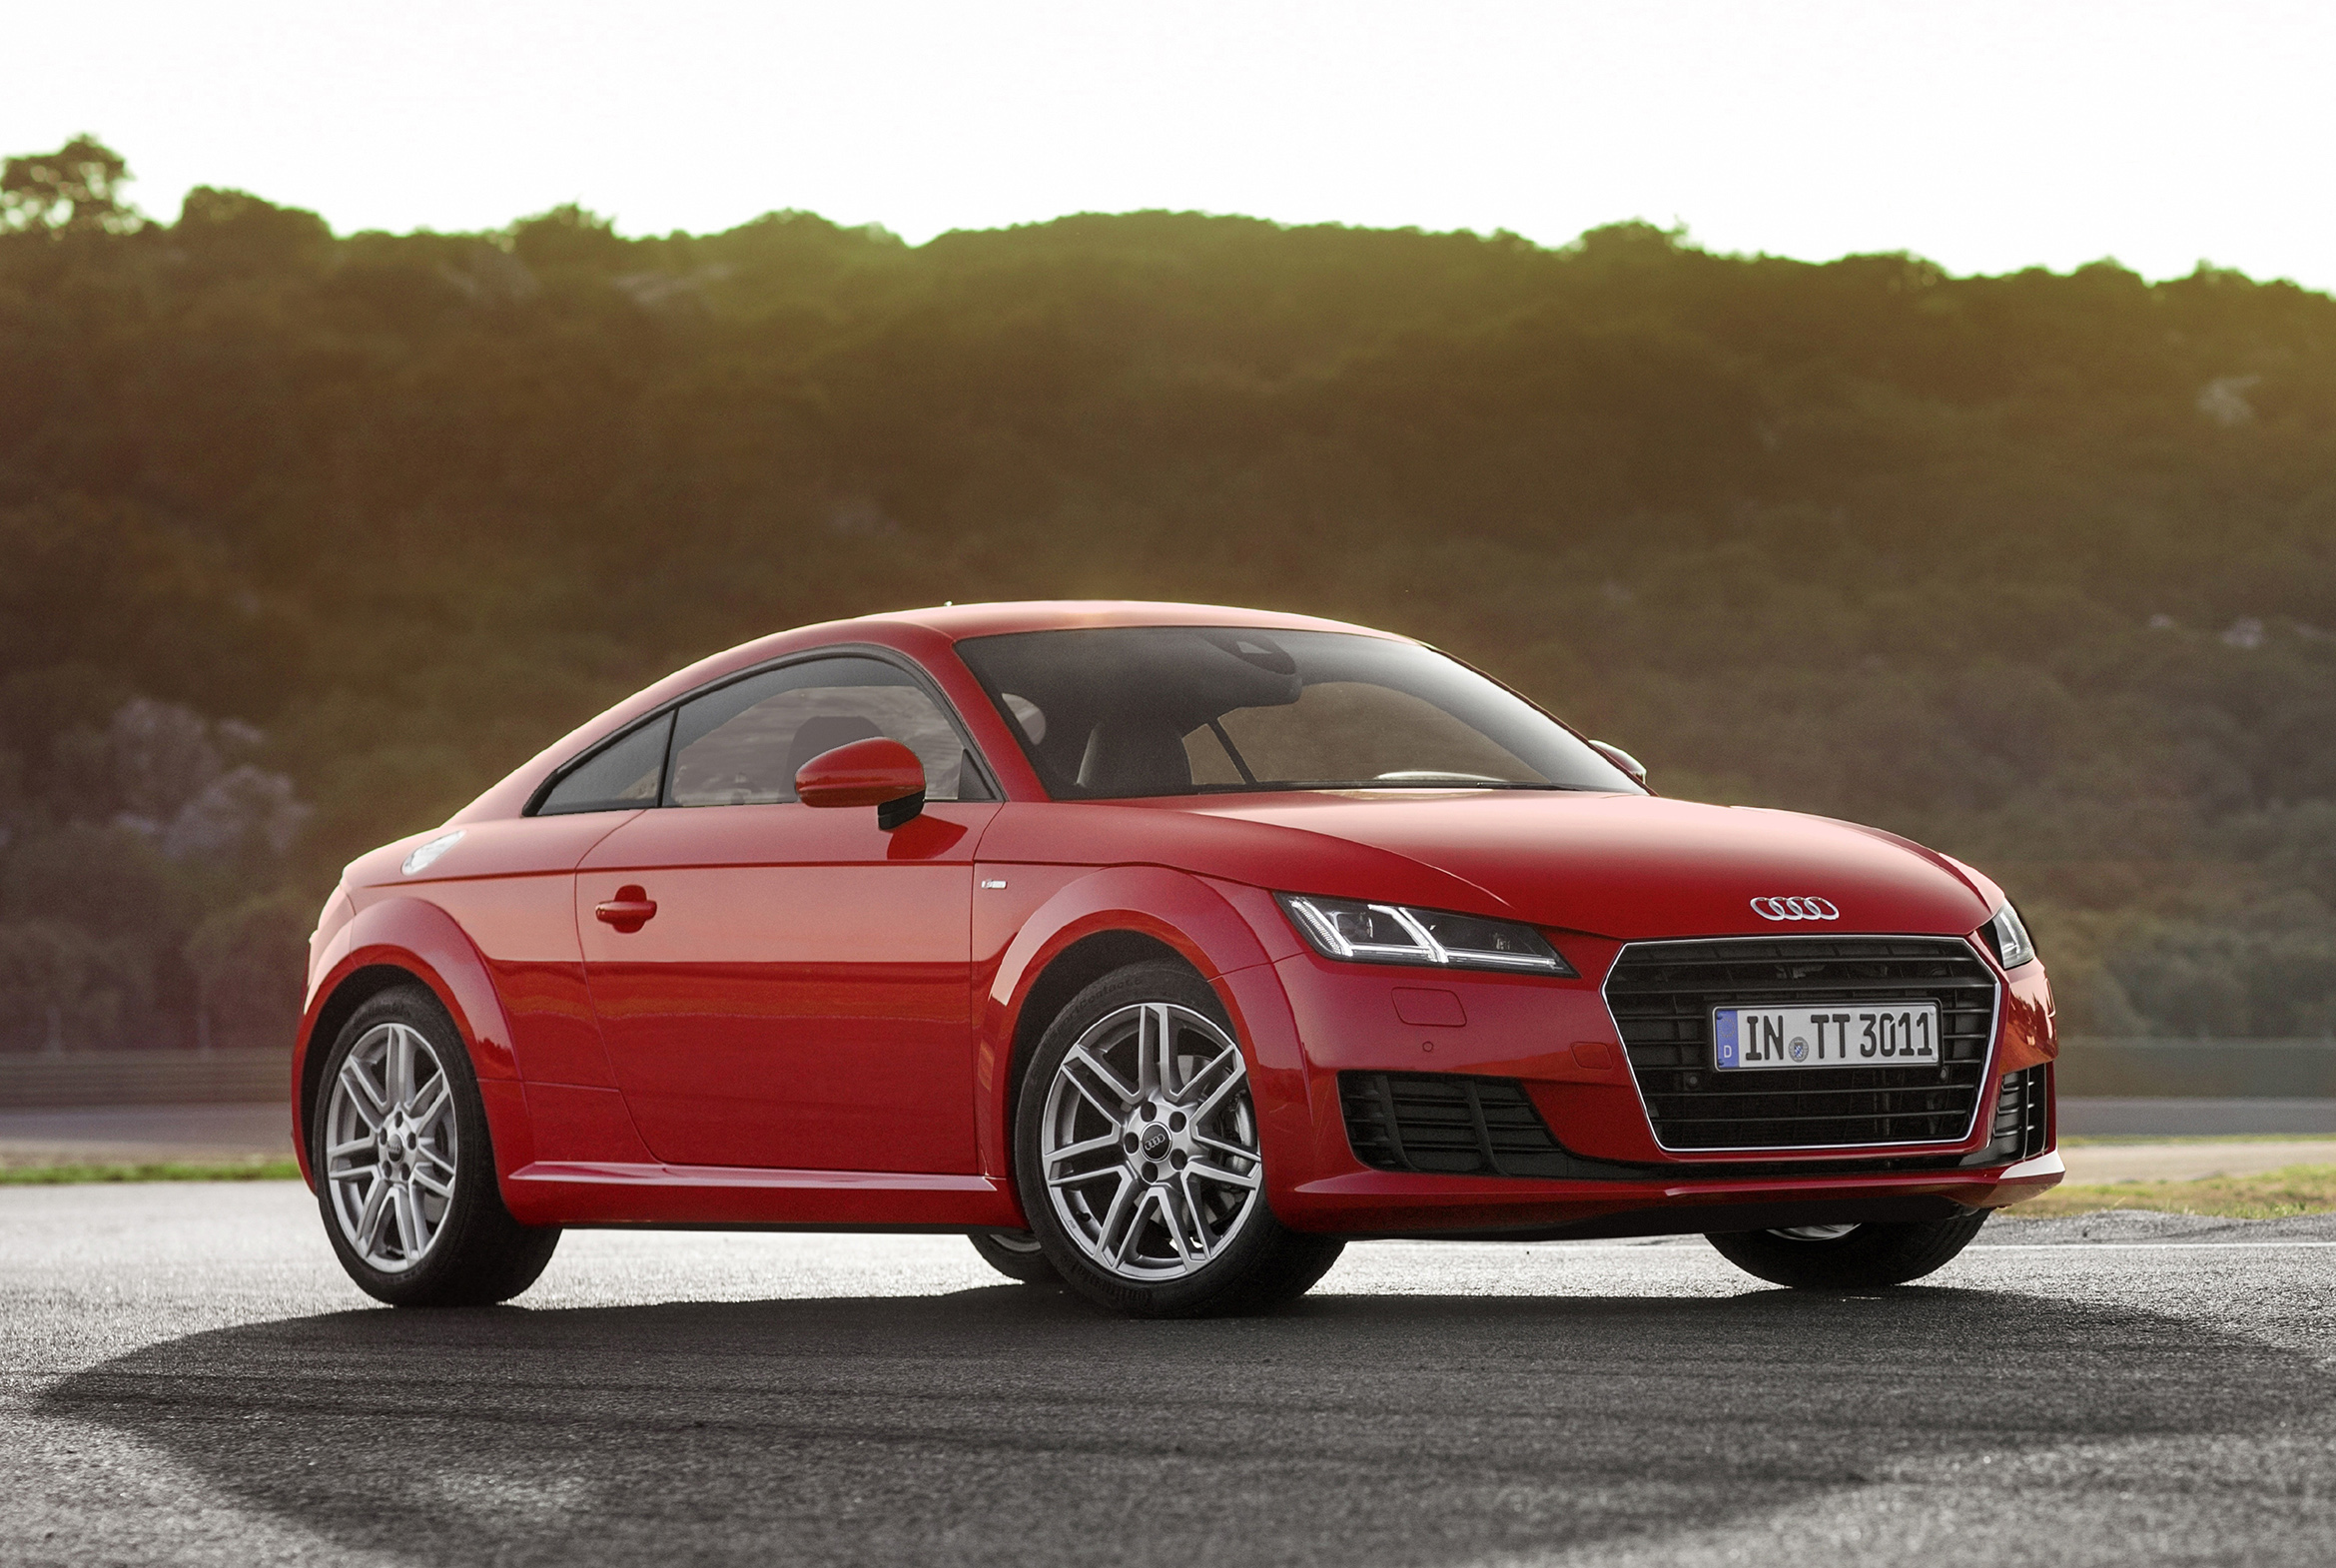 2015 audi tt coupe and roadster get more affordable 180 hp 1 8 tfsi engine autoevolution. Black Bedroom Furniture Sets. Home Design Ideas